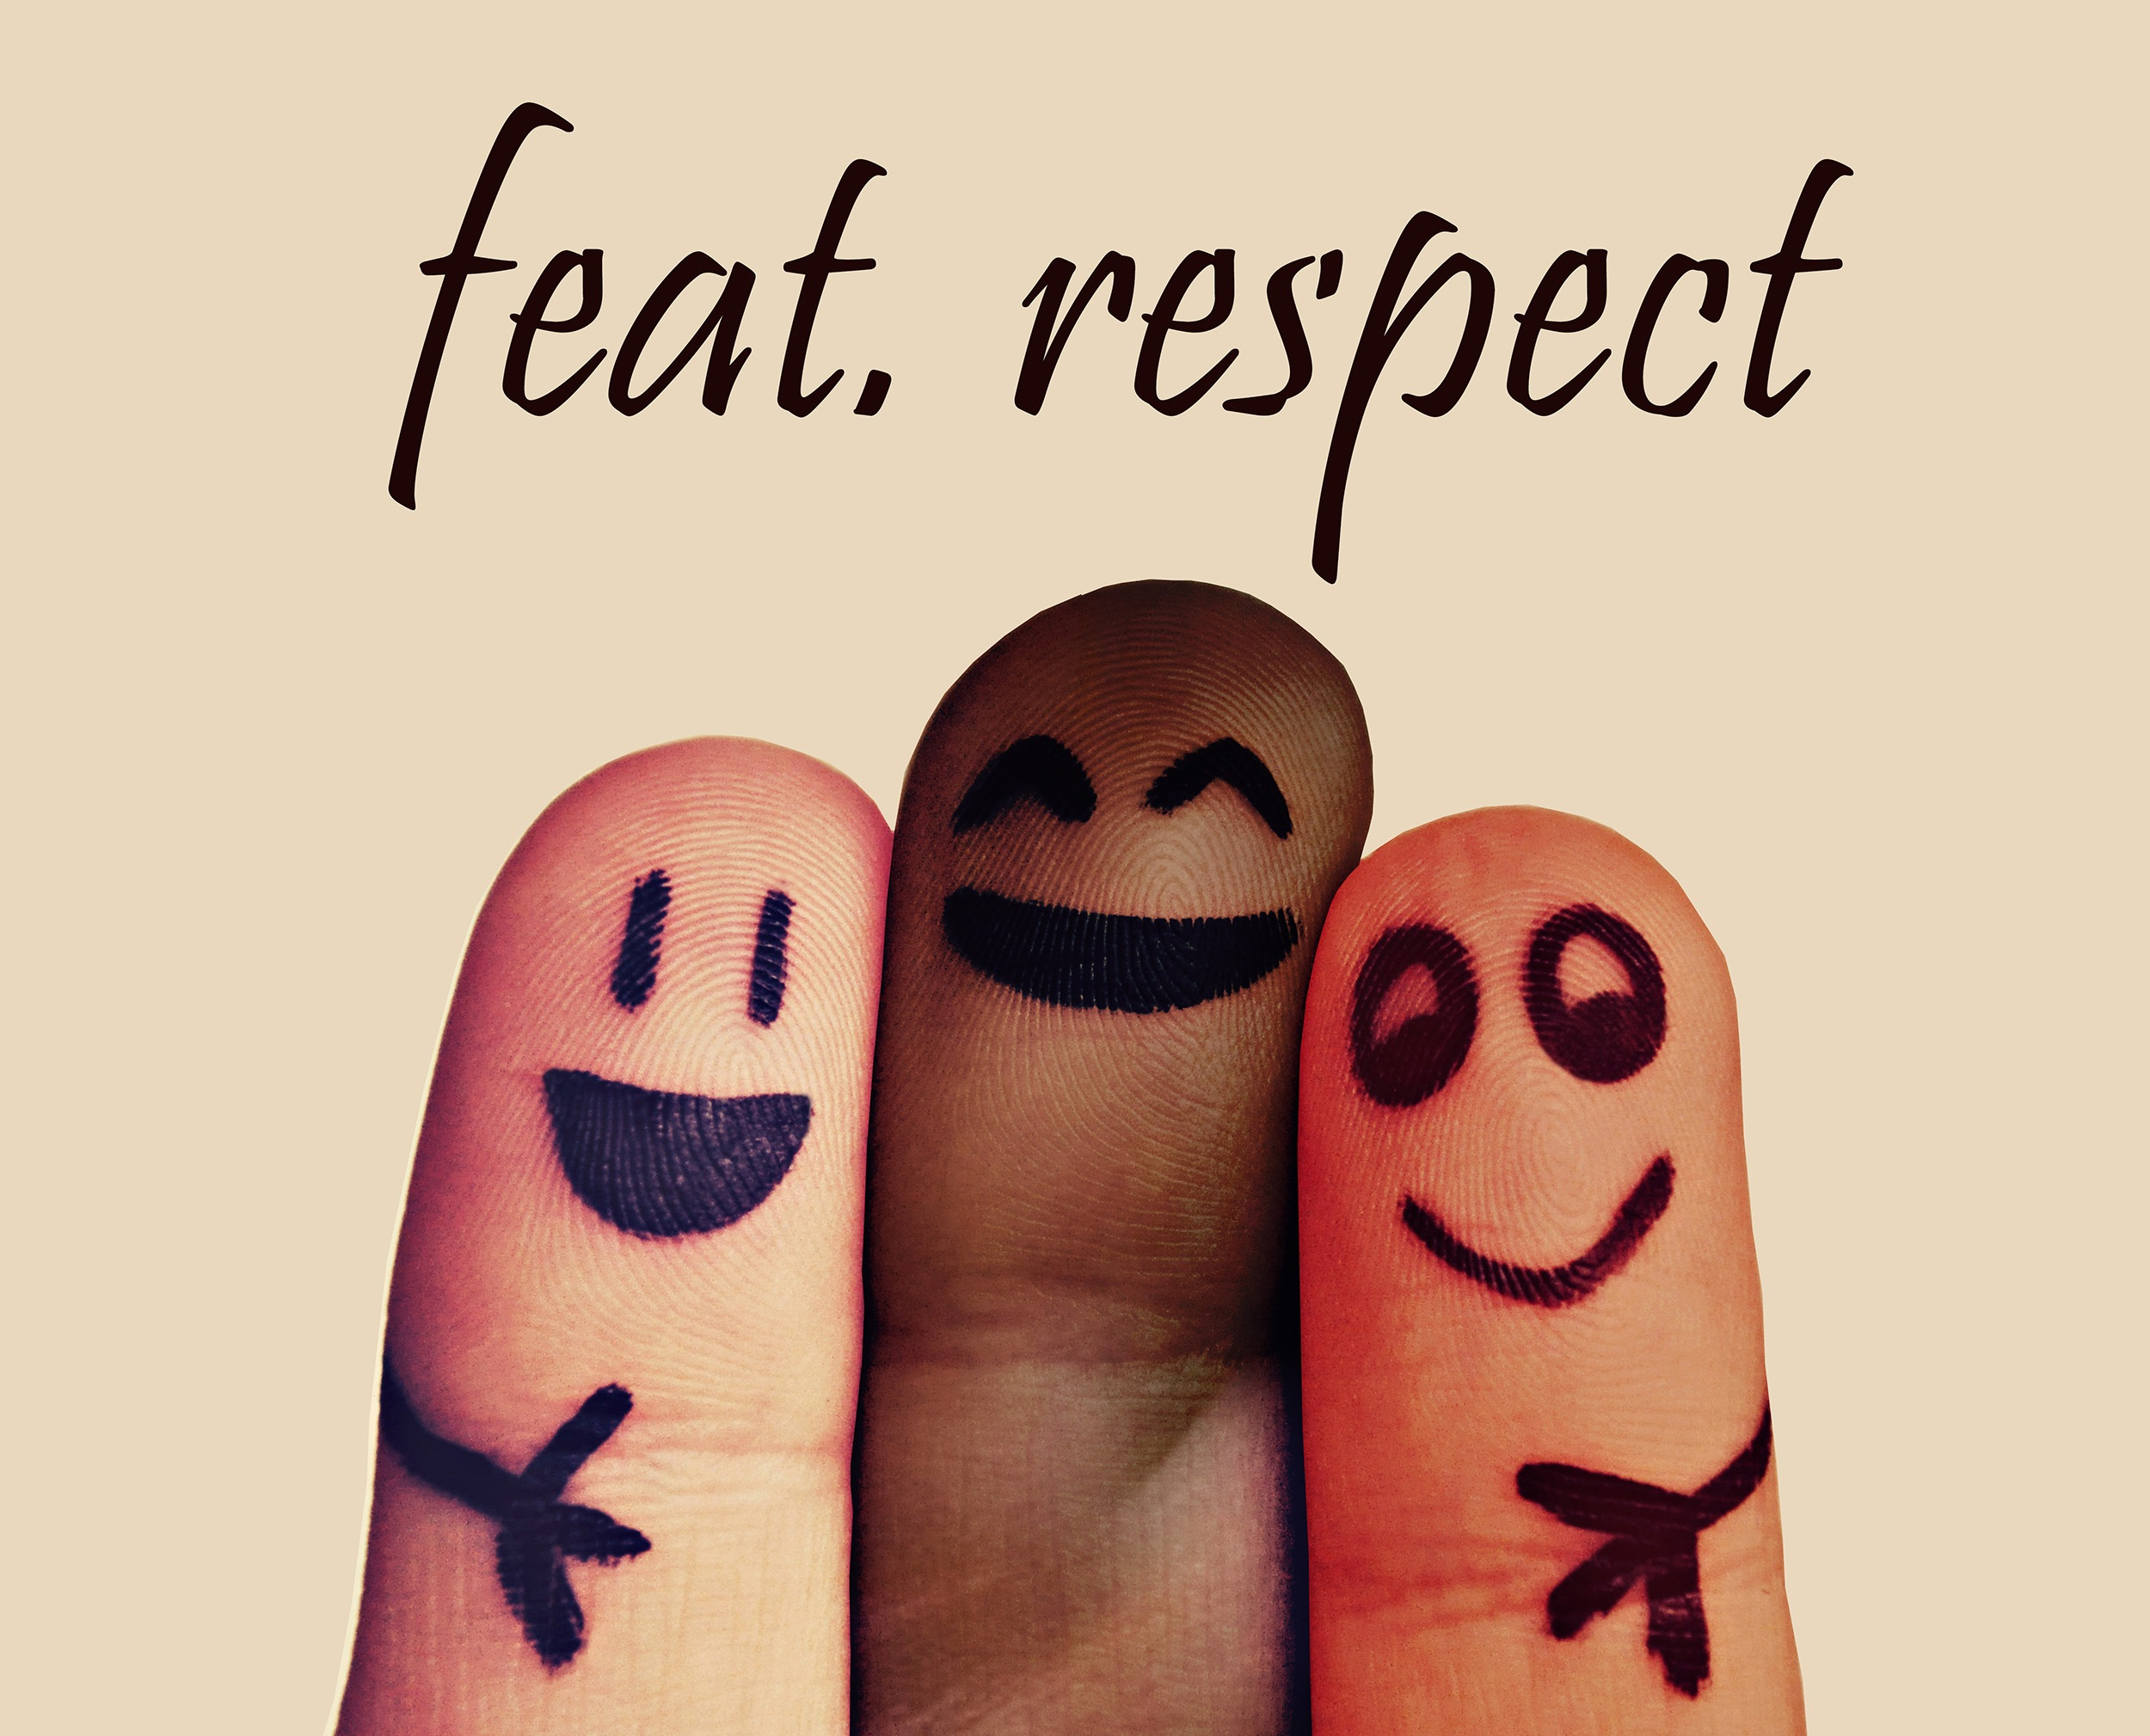 feat. Respect